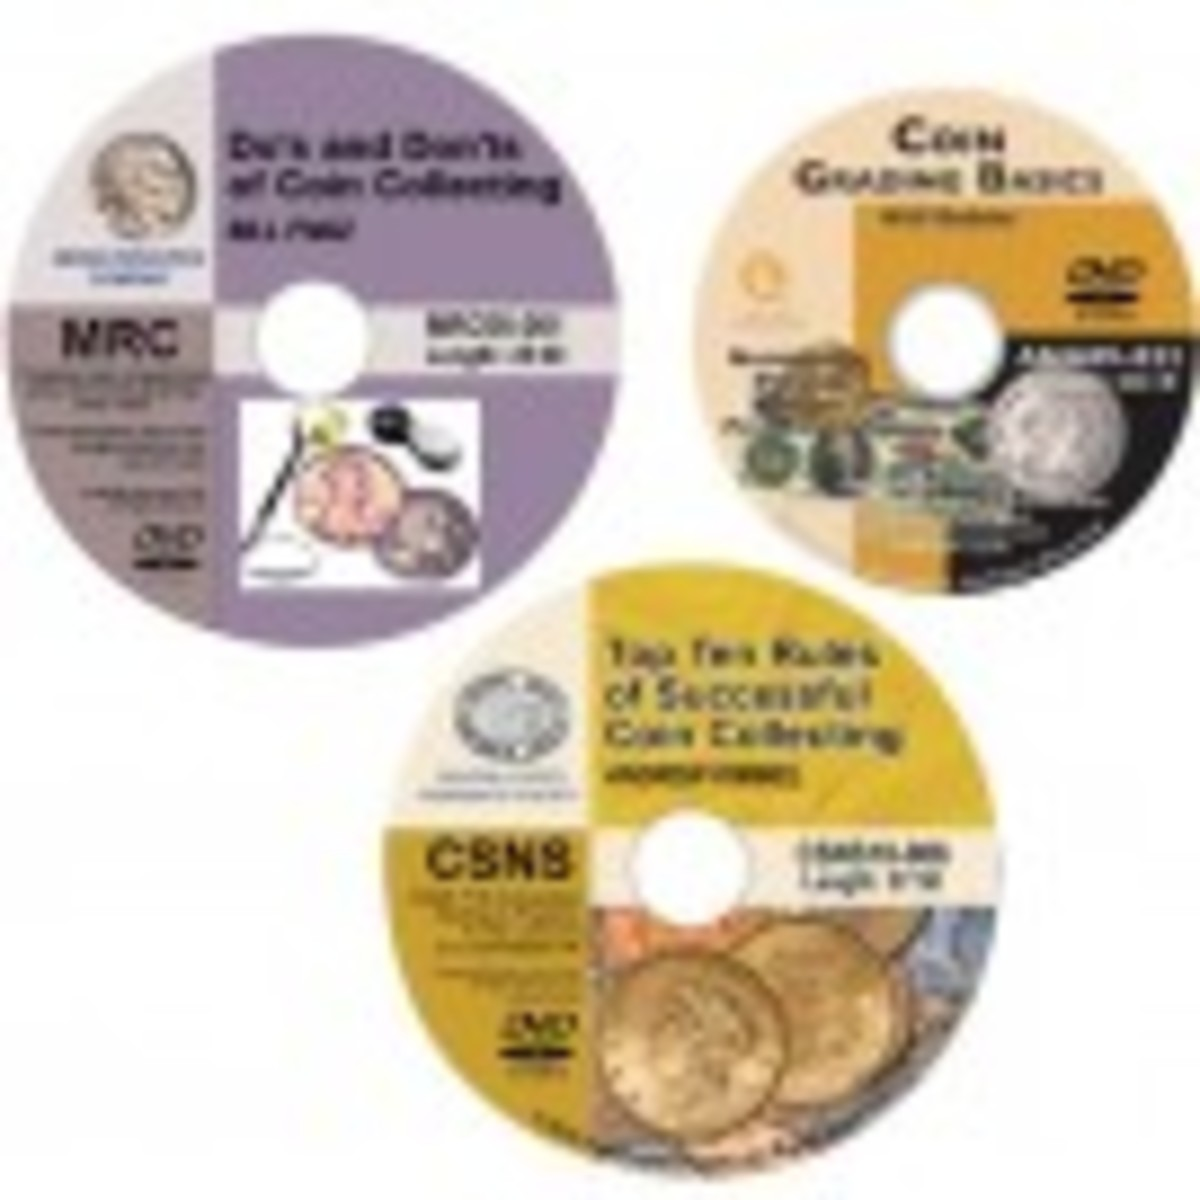 Essentials of Coin Collecting DVD Set